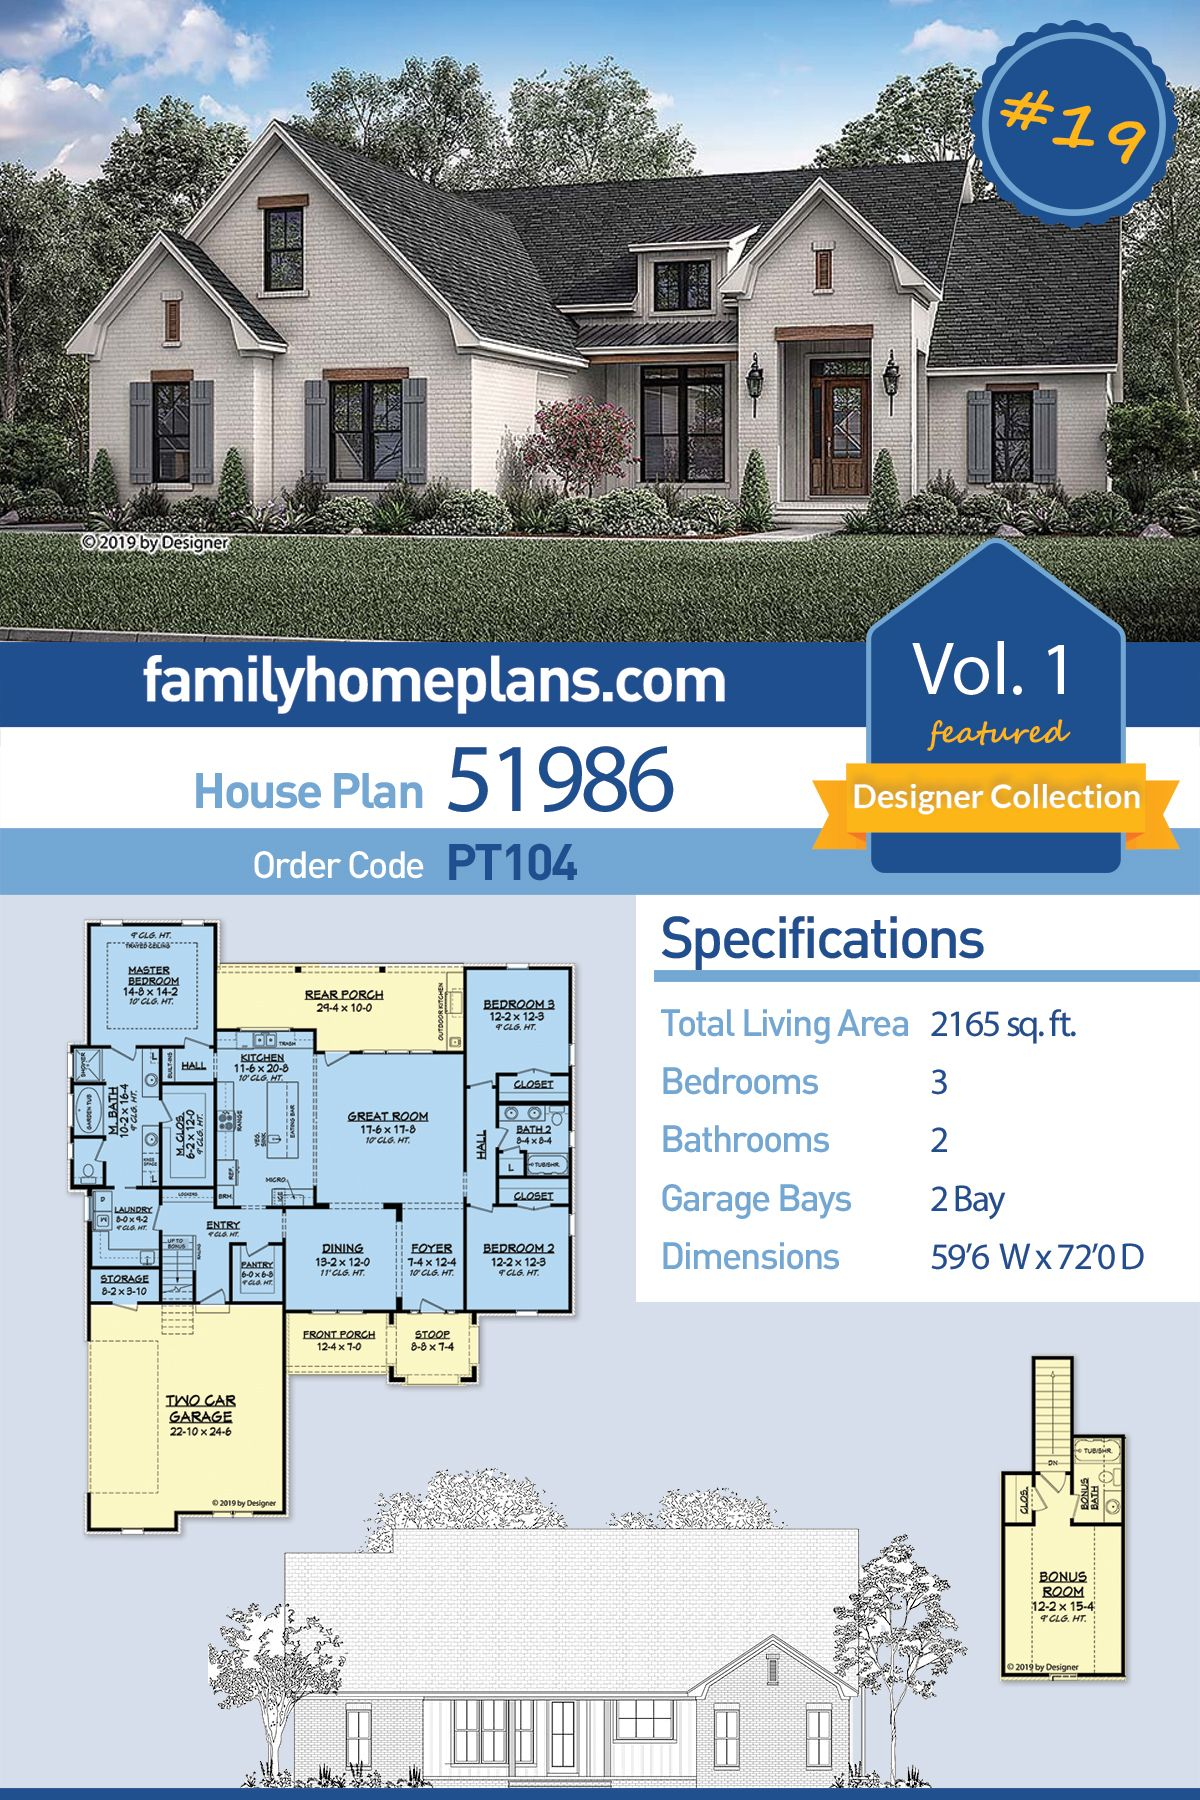 Traditional Style House Plan 51986 With 3 Bed 2 Bath 2 Car Garage House Plans Farmhouse House Plans Family House Plans